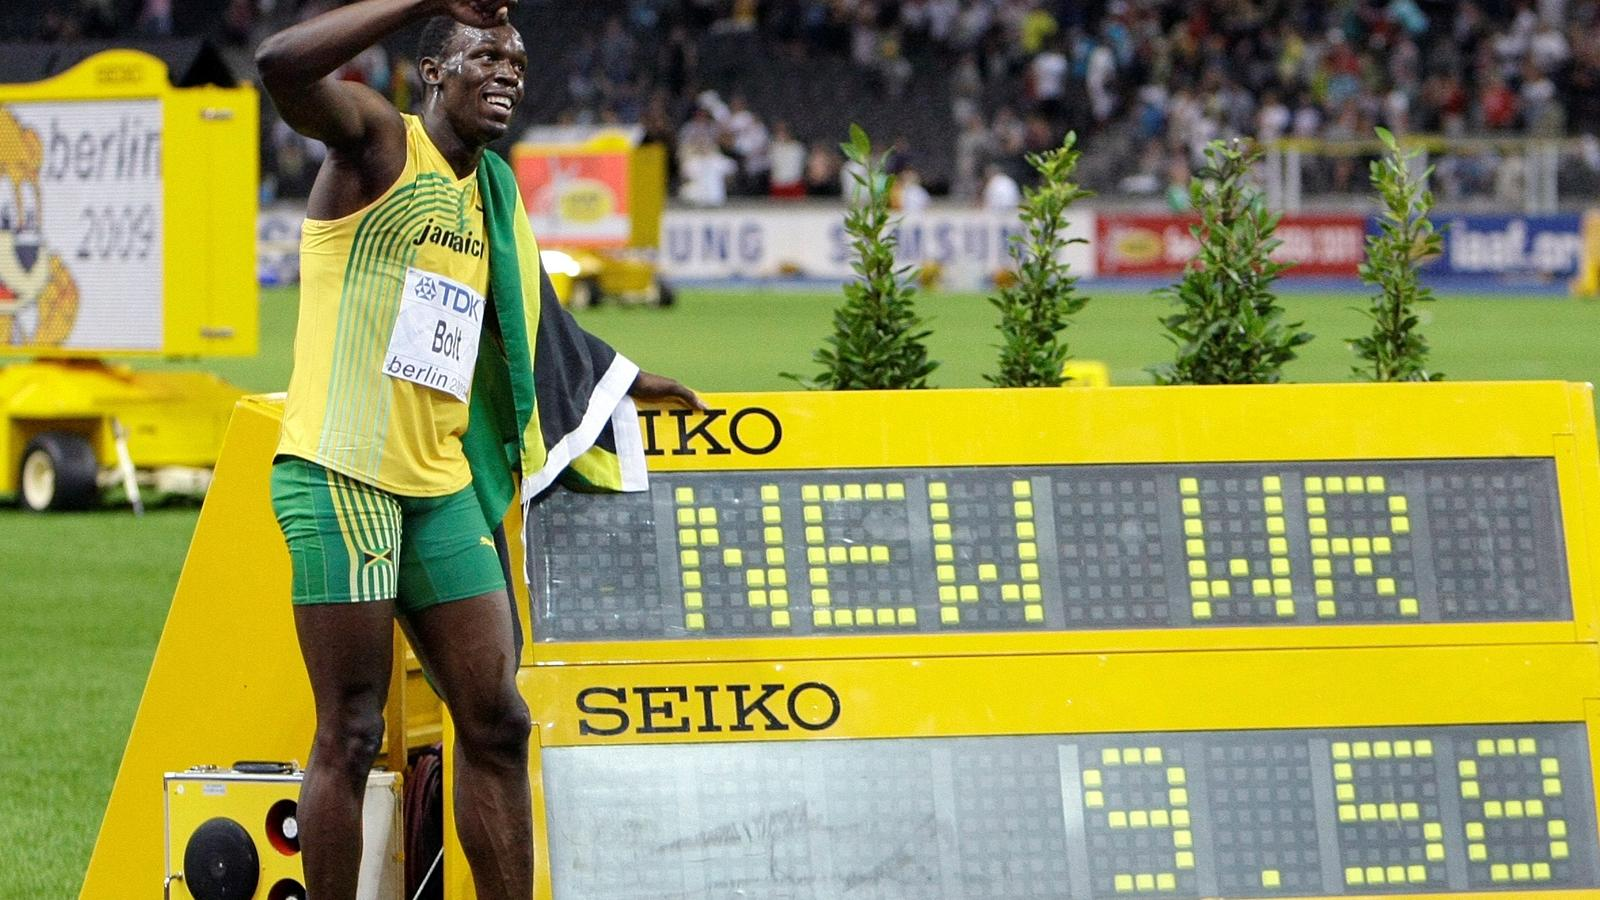 Usain Bolt of Jamaica celebrates winning the men's 100 meters final during the world athletics championships at the Olympic stadium in Berlin, August 16, 2009.